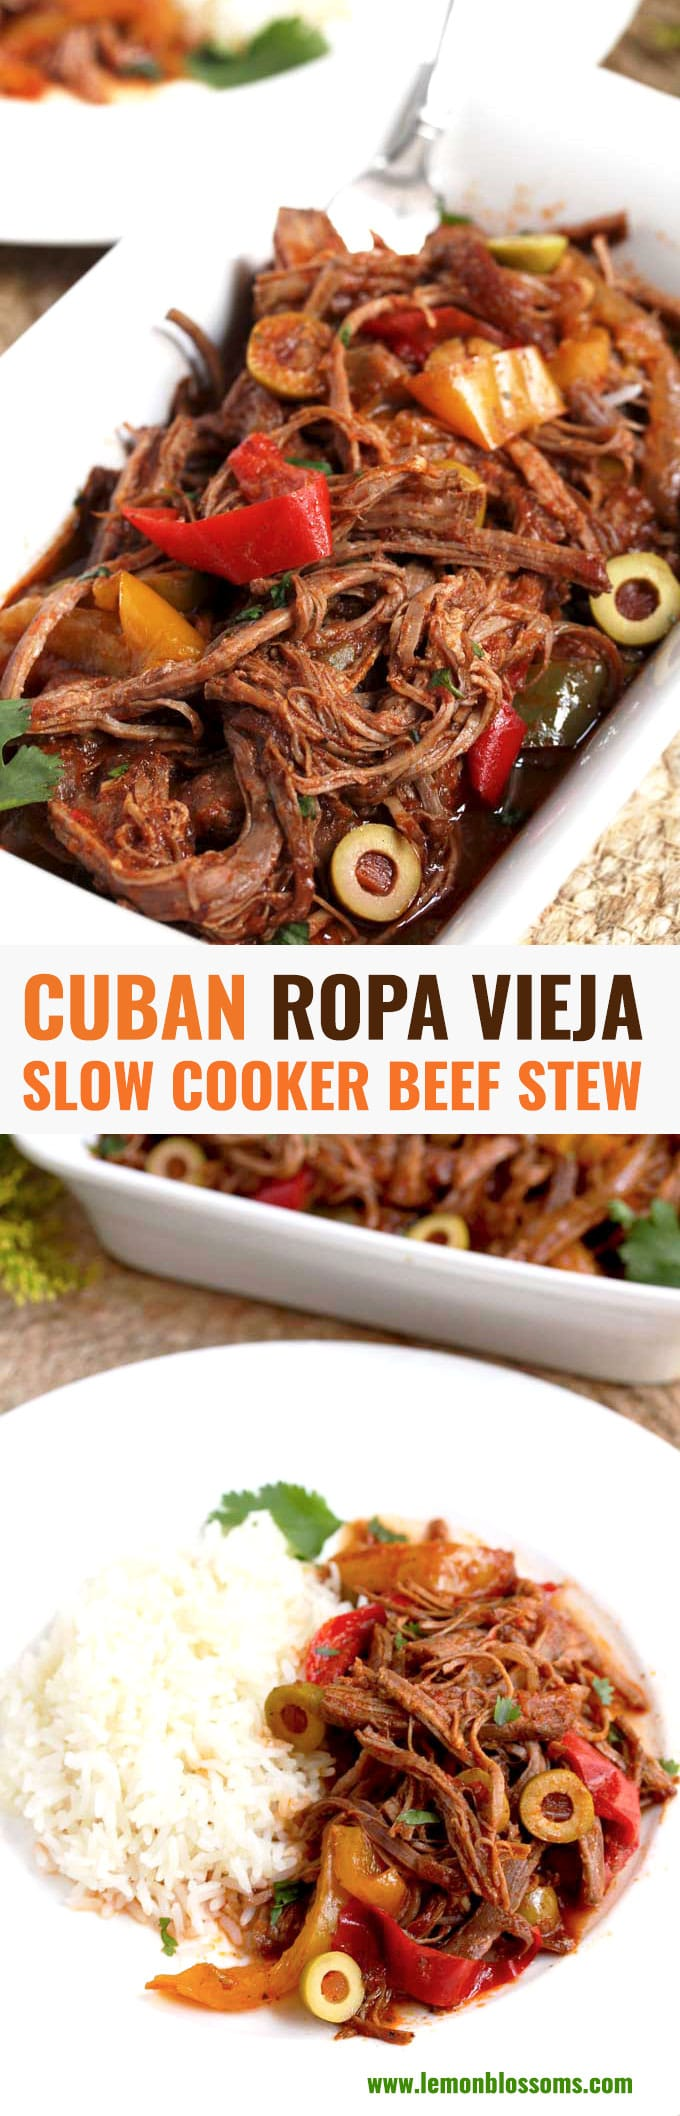 Cuban Ropa Vieja features tender shredded beef simmered in the most flavorful sauce of tomatoes, bell peppers and spices. This hearty Ropa Vieja beef stew recipe is made easily in the slow cooker.